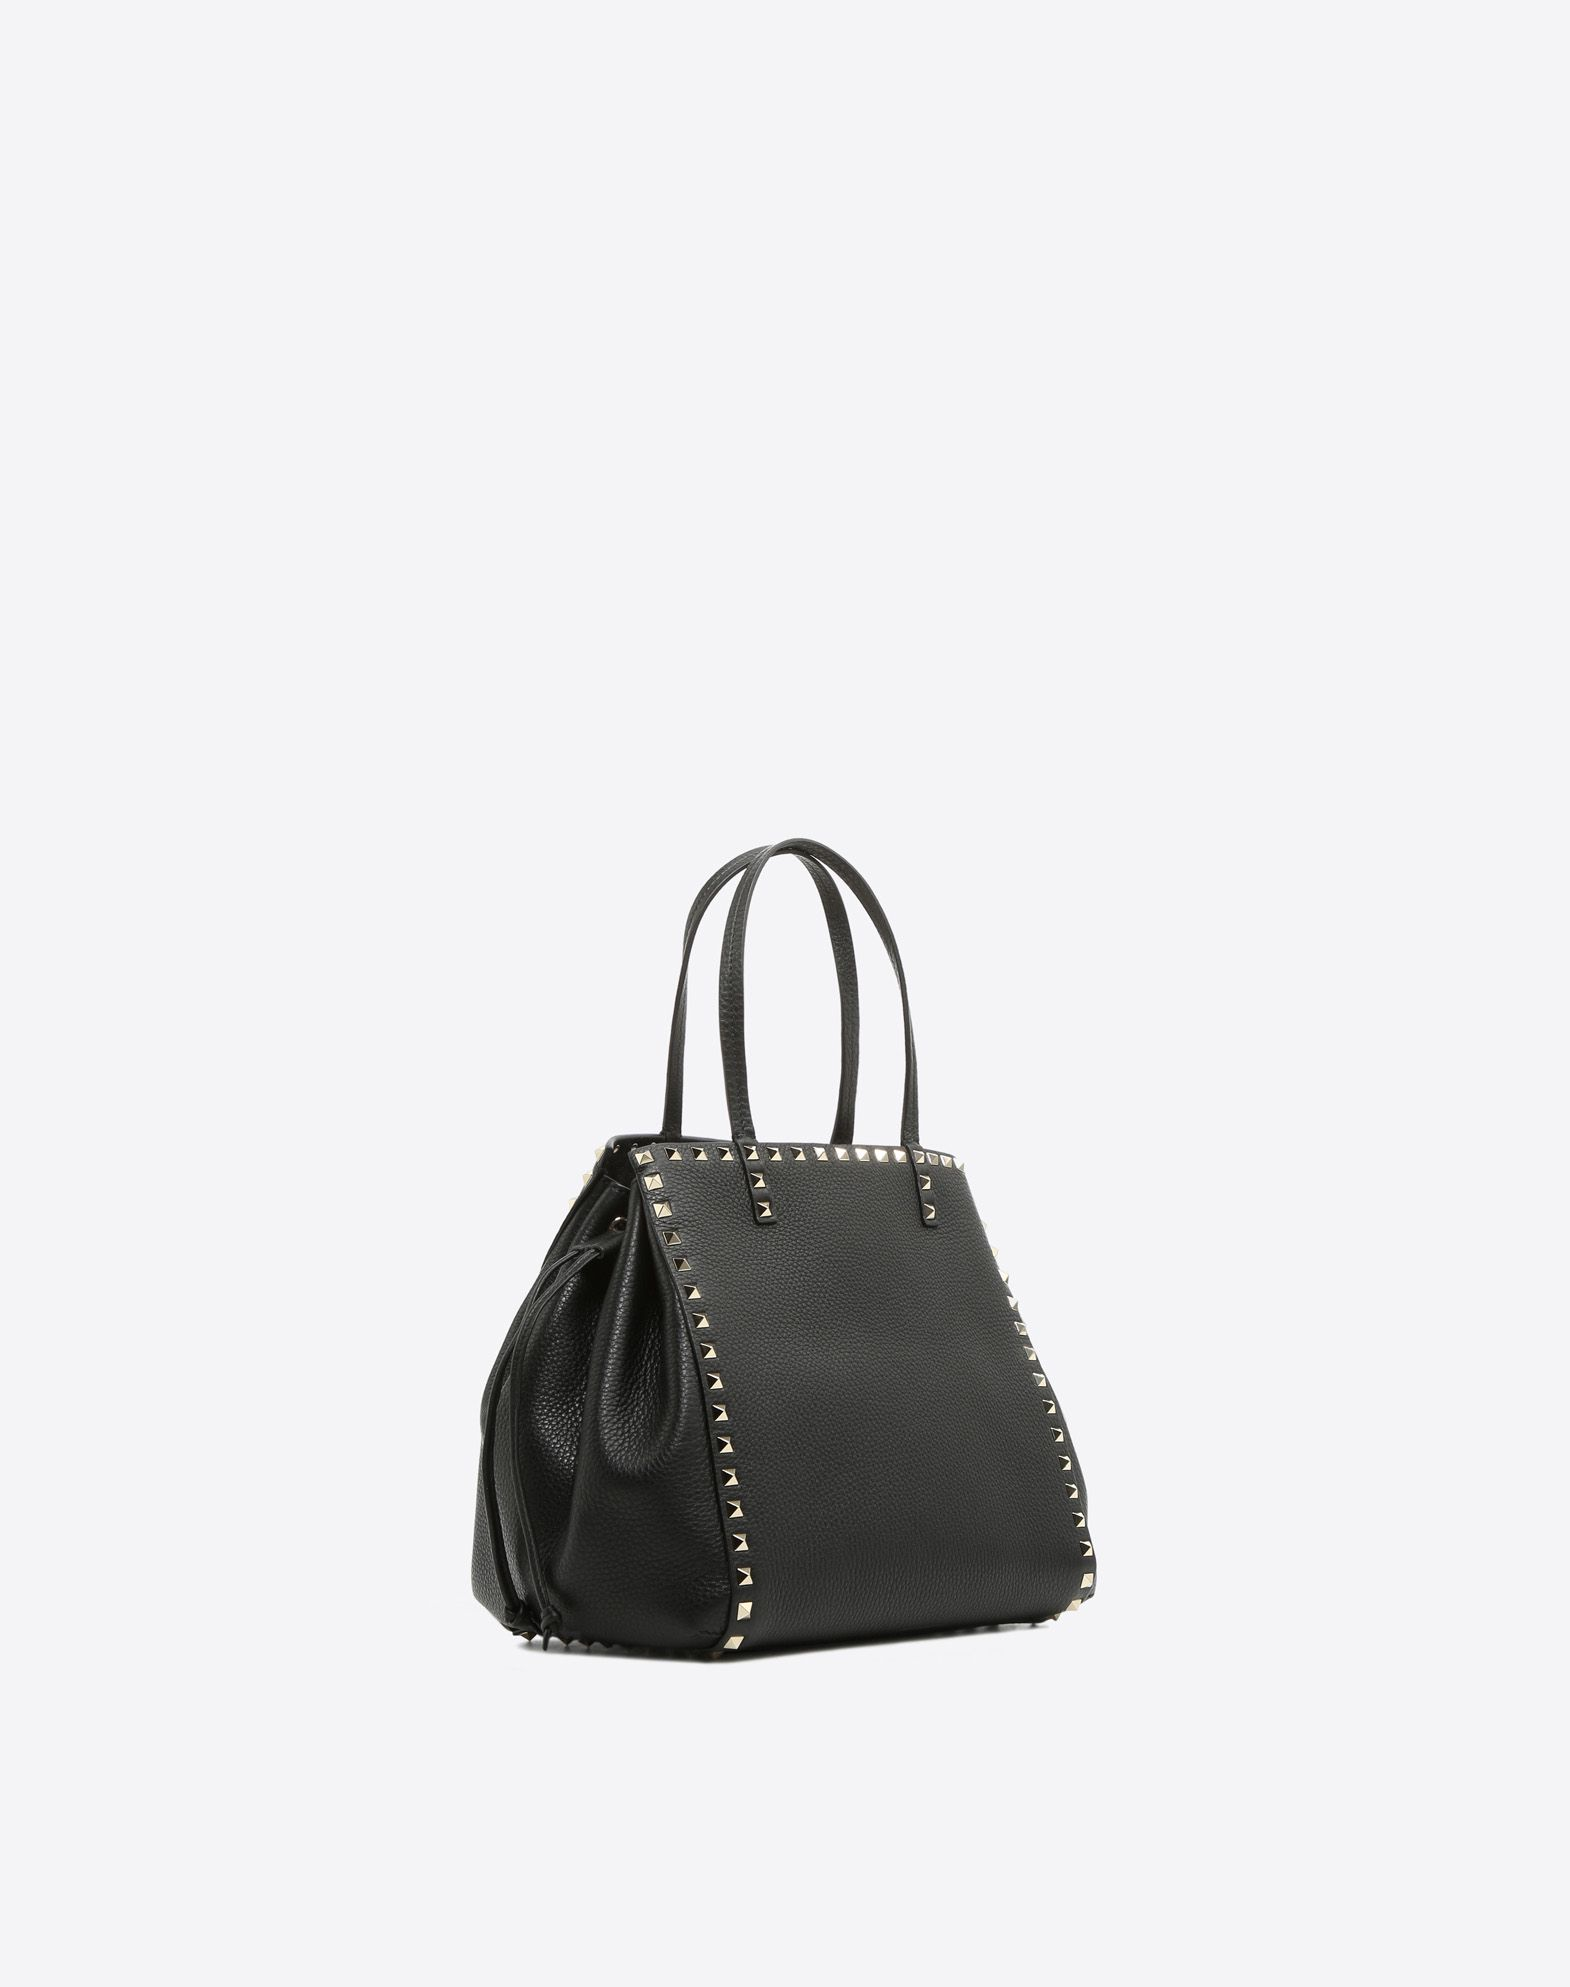 VALENTINO GARAVANI Rockstud Double Handle Bag HANDBAG D r